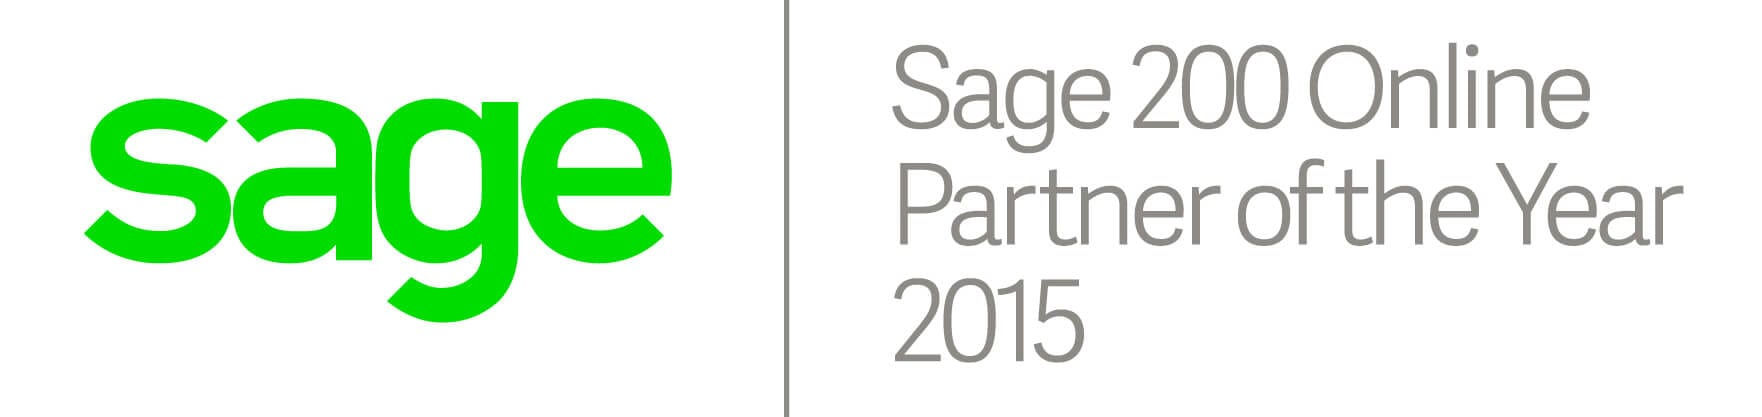 Sage 200 Online Partner of the Year Award